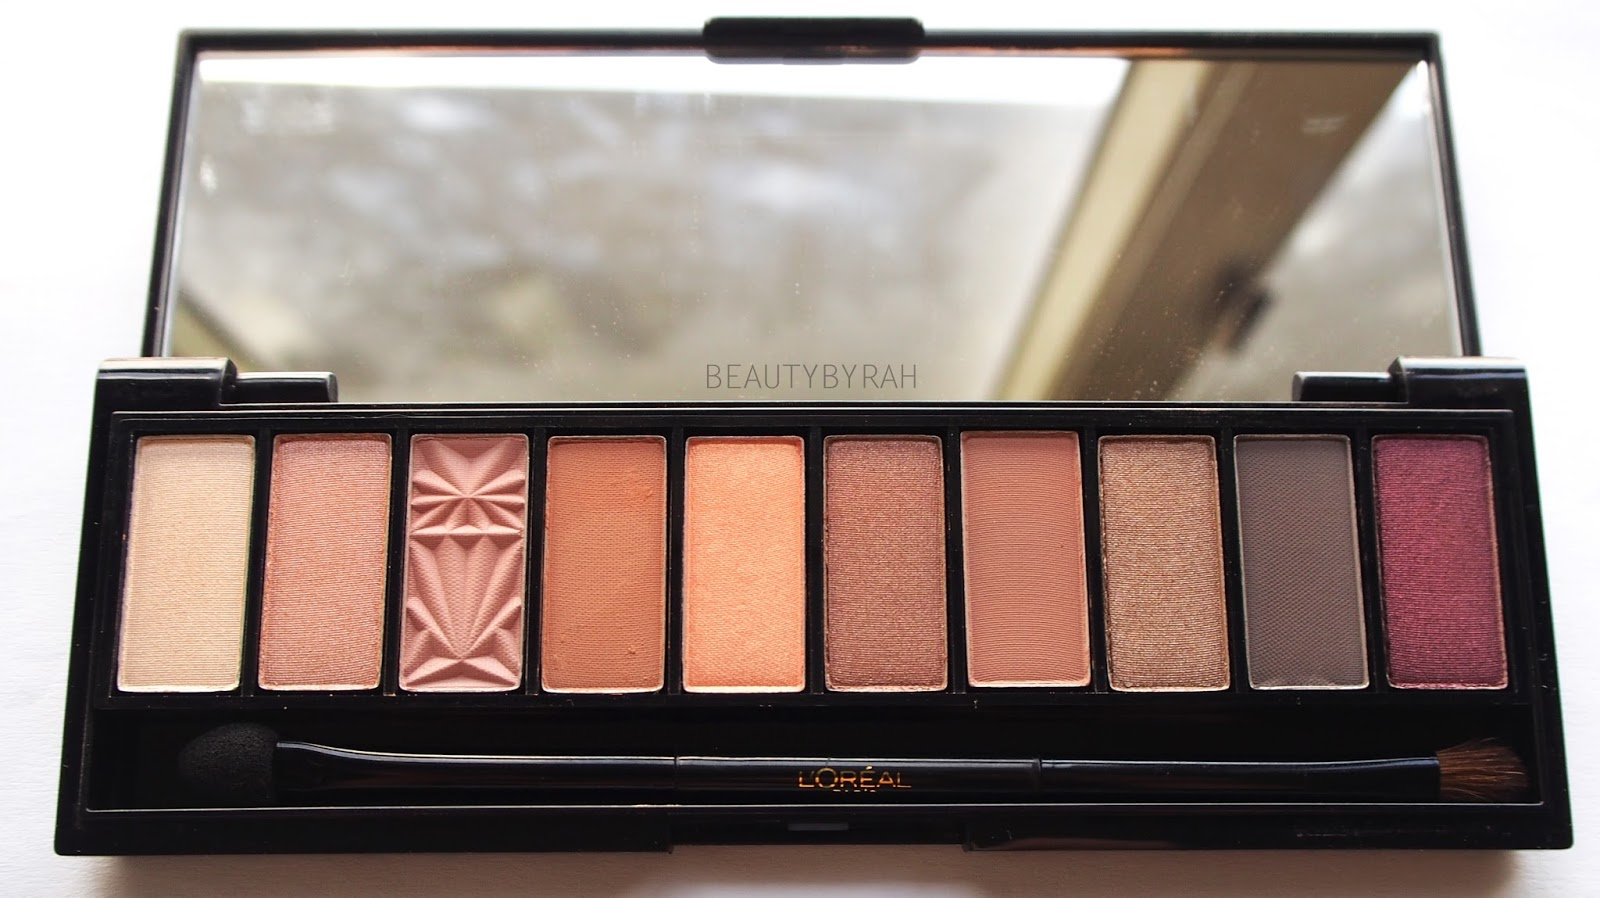 L'Oreal La Palette Nude  in Nude Beige & Rose Review and Swatches